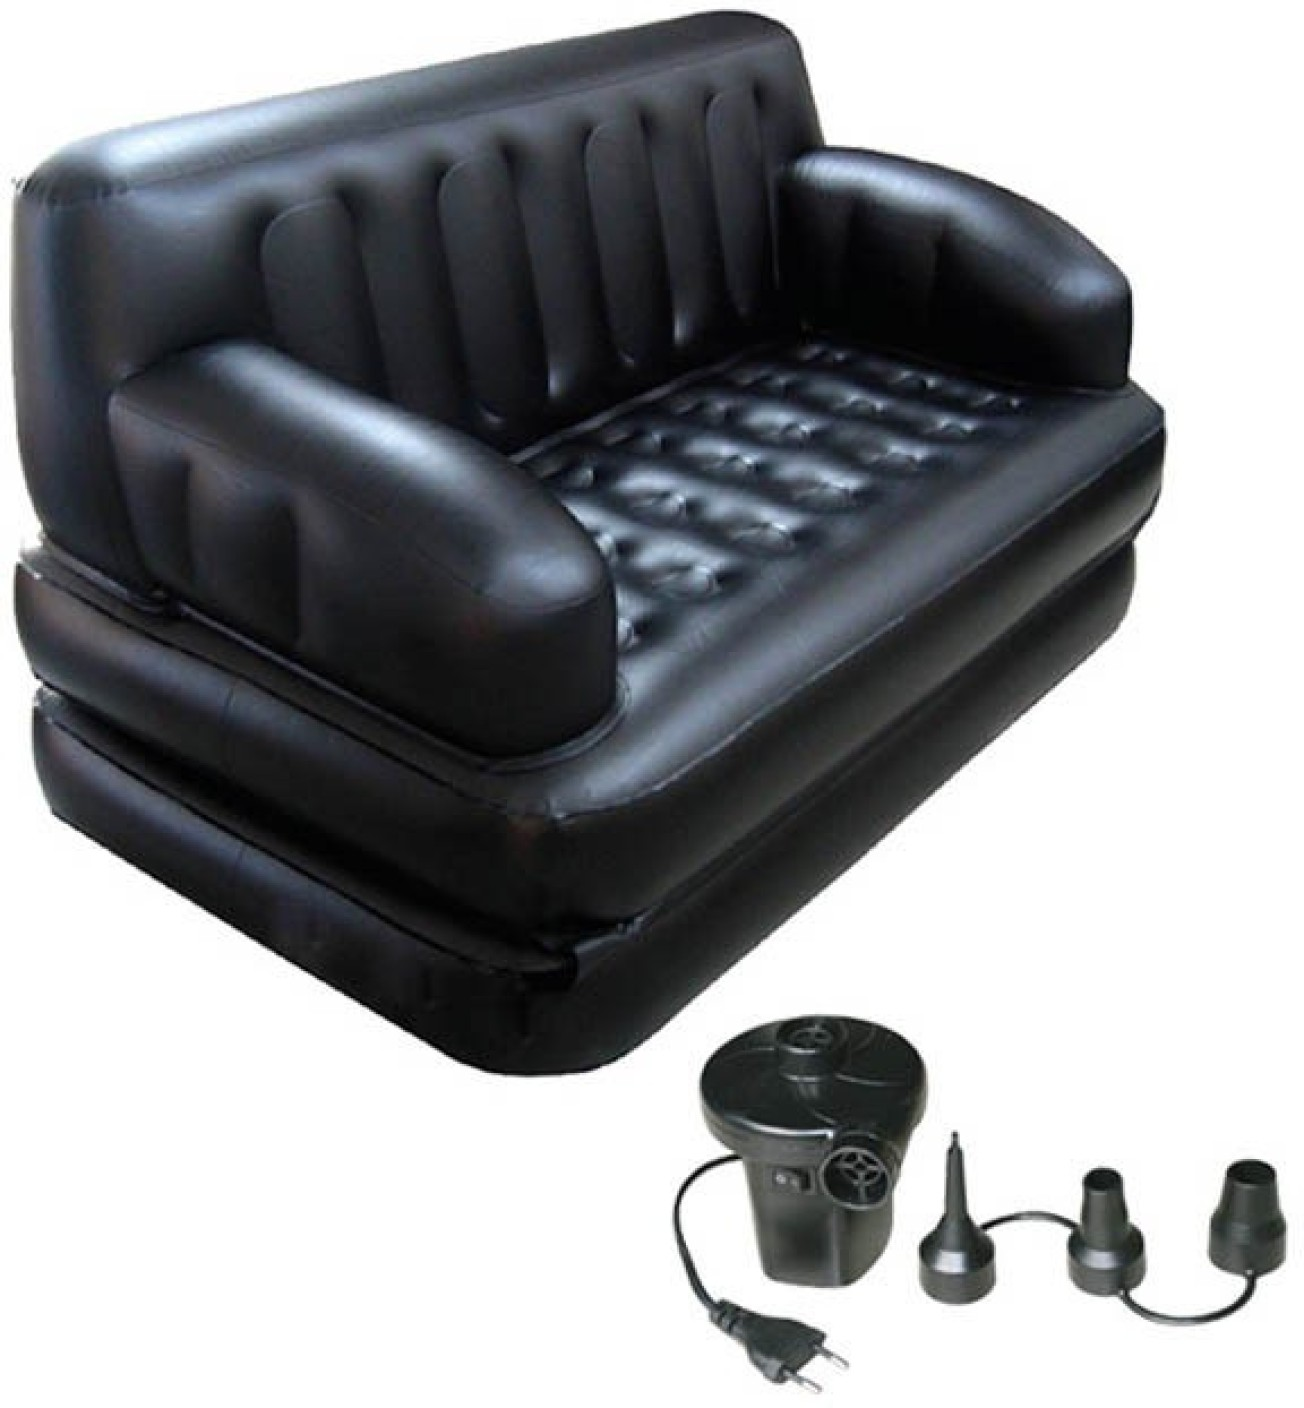 Inflatable Sofa Bed Flipkart: Lovato PVC 2 Seater Inflatable Sofa Price In India